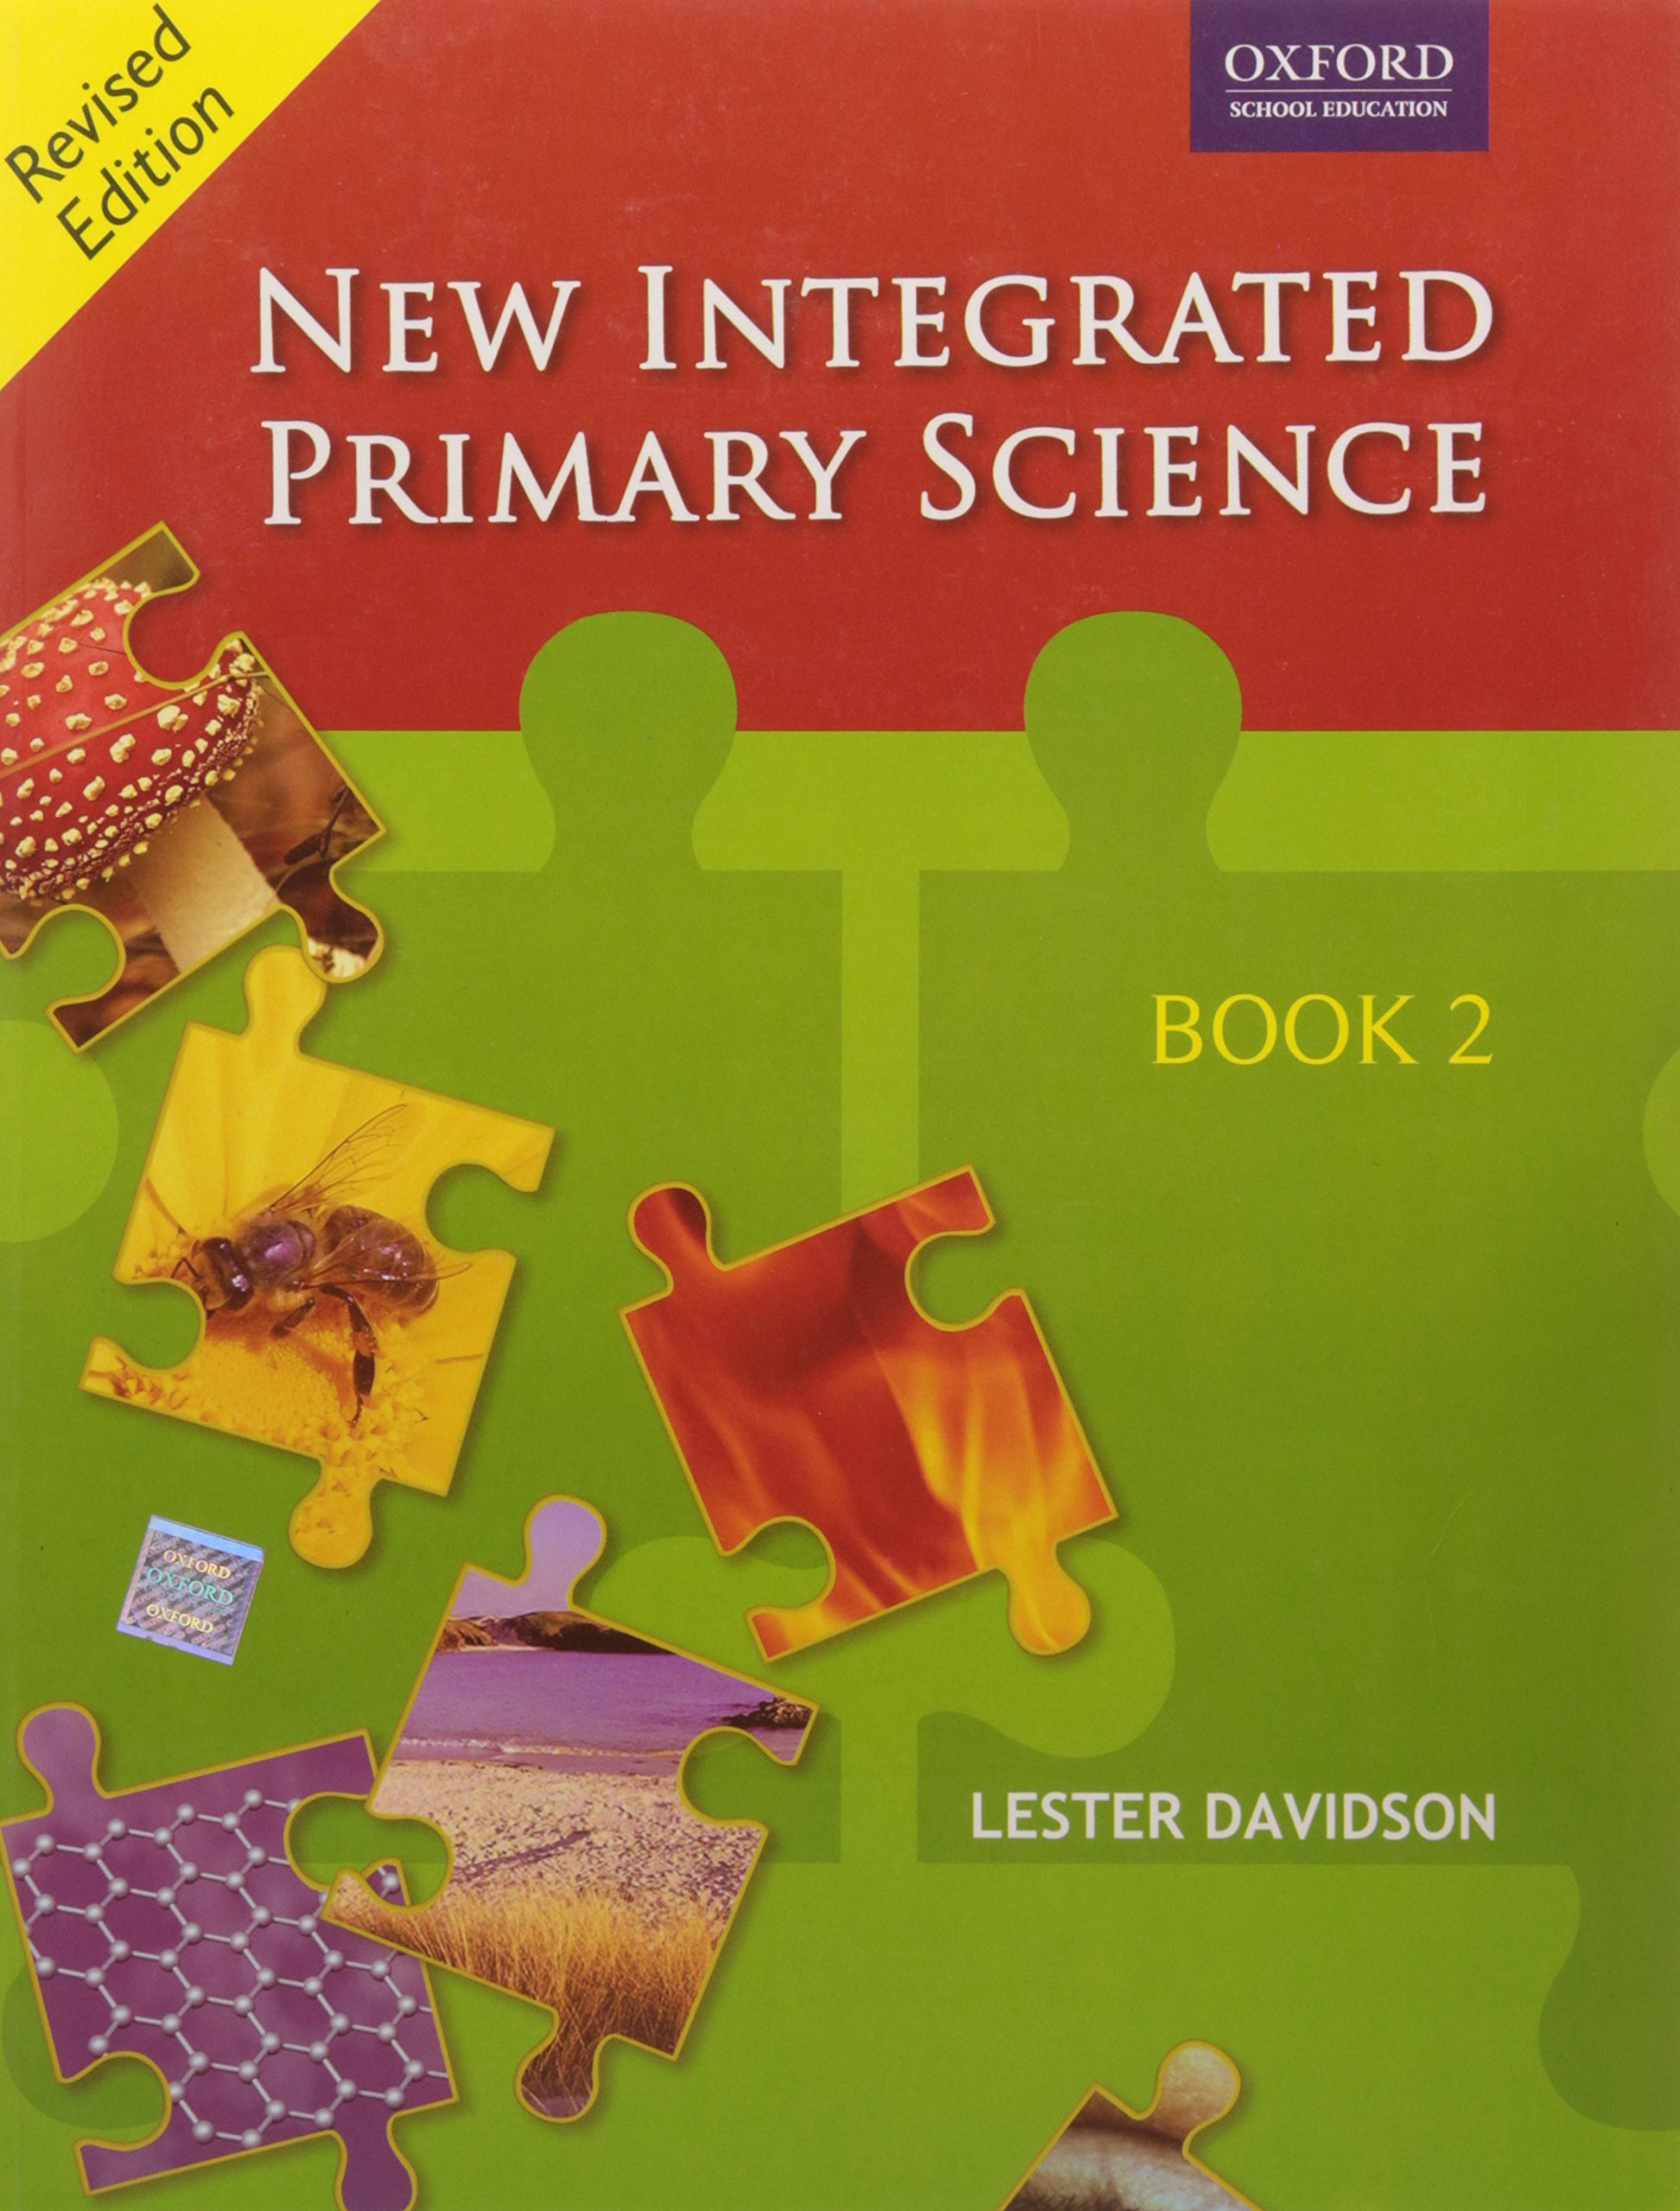 New Integrated Primary Science Book 2